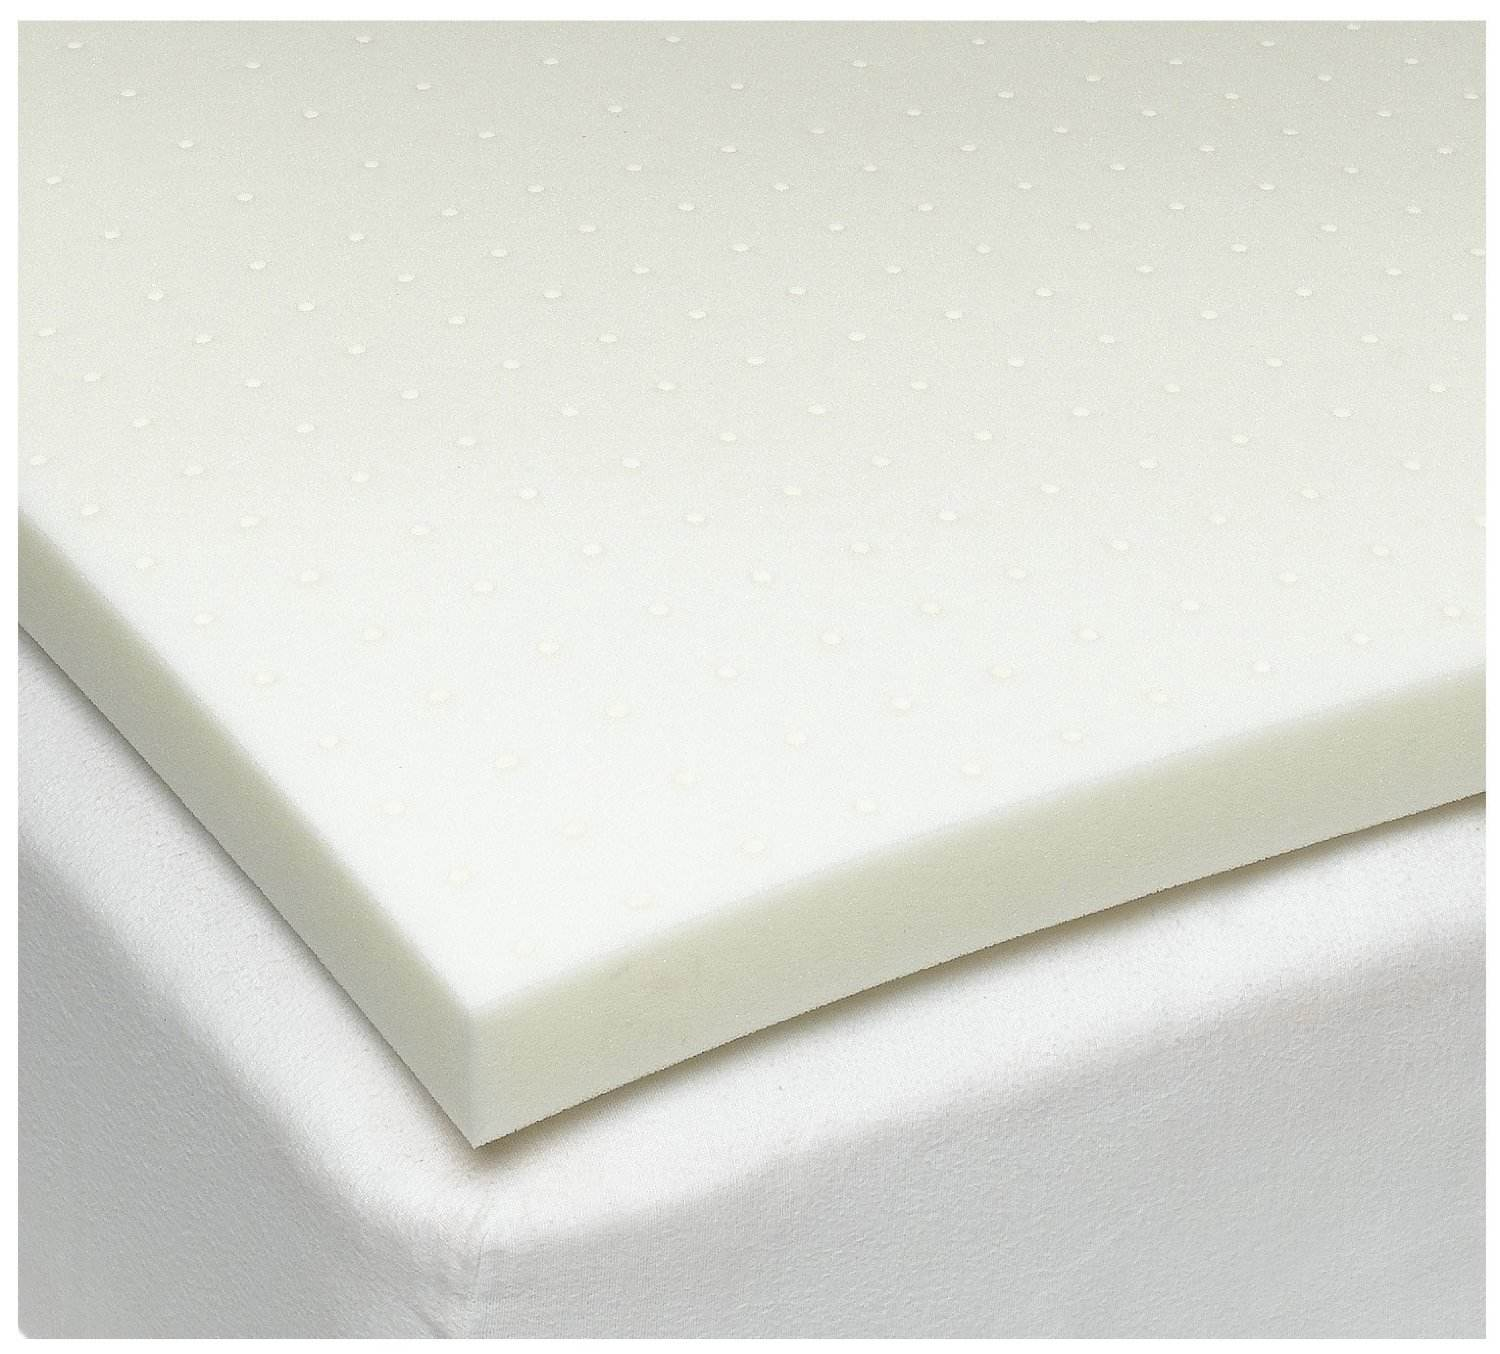 Sleep Joy Memory Foam Topper Sleep Joy Visc02 Ventilated Memory Foam Mattress Topper